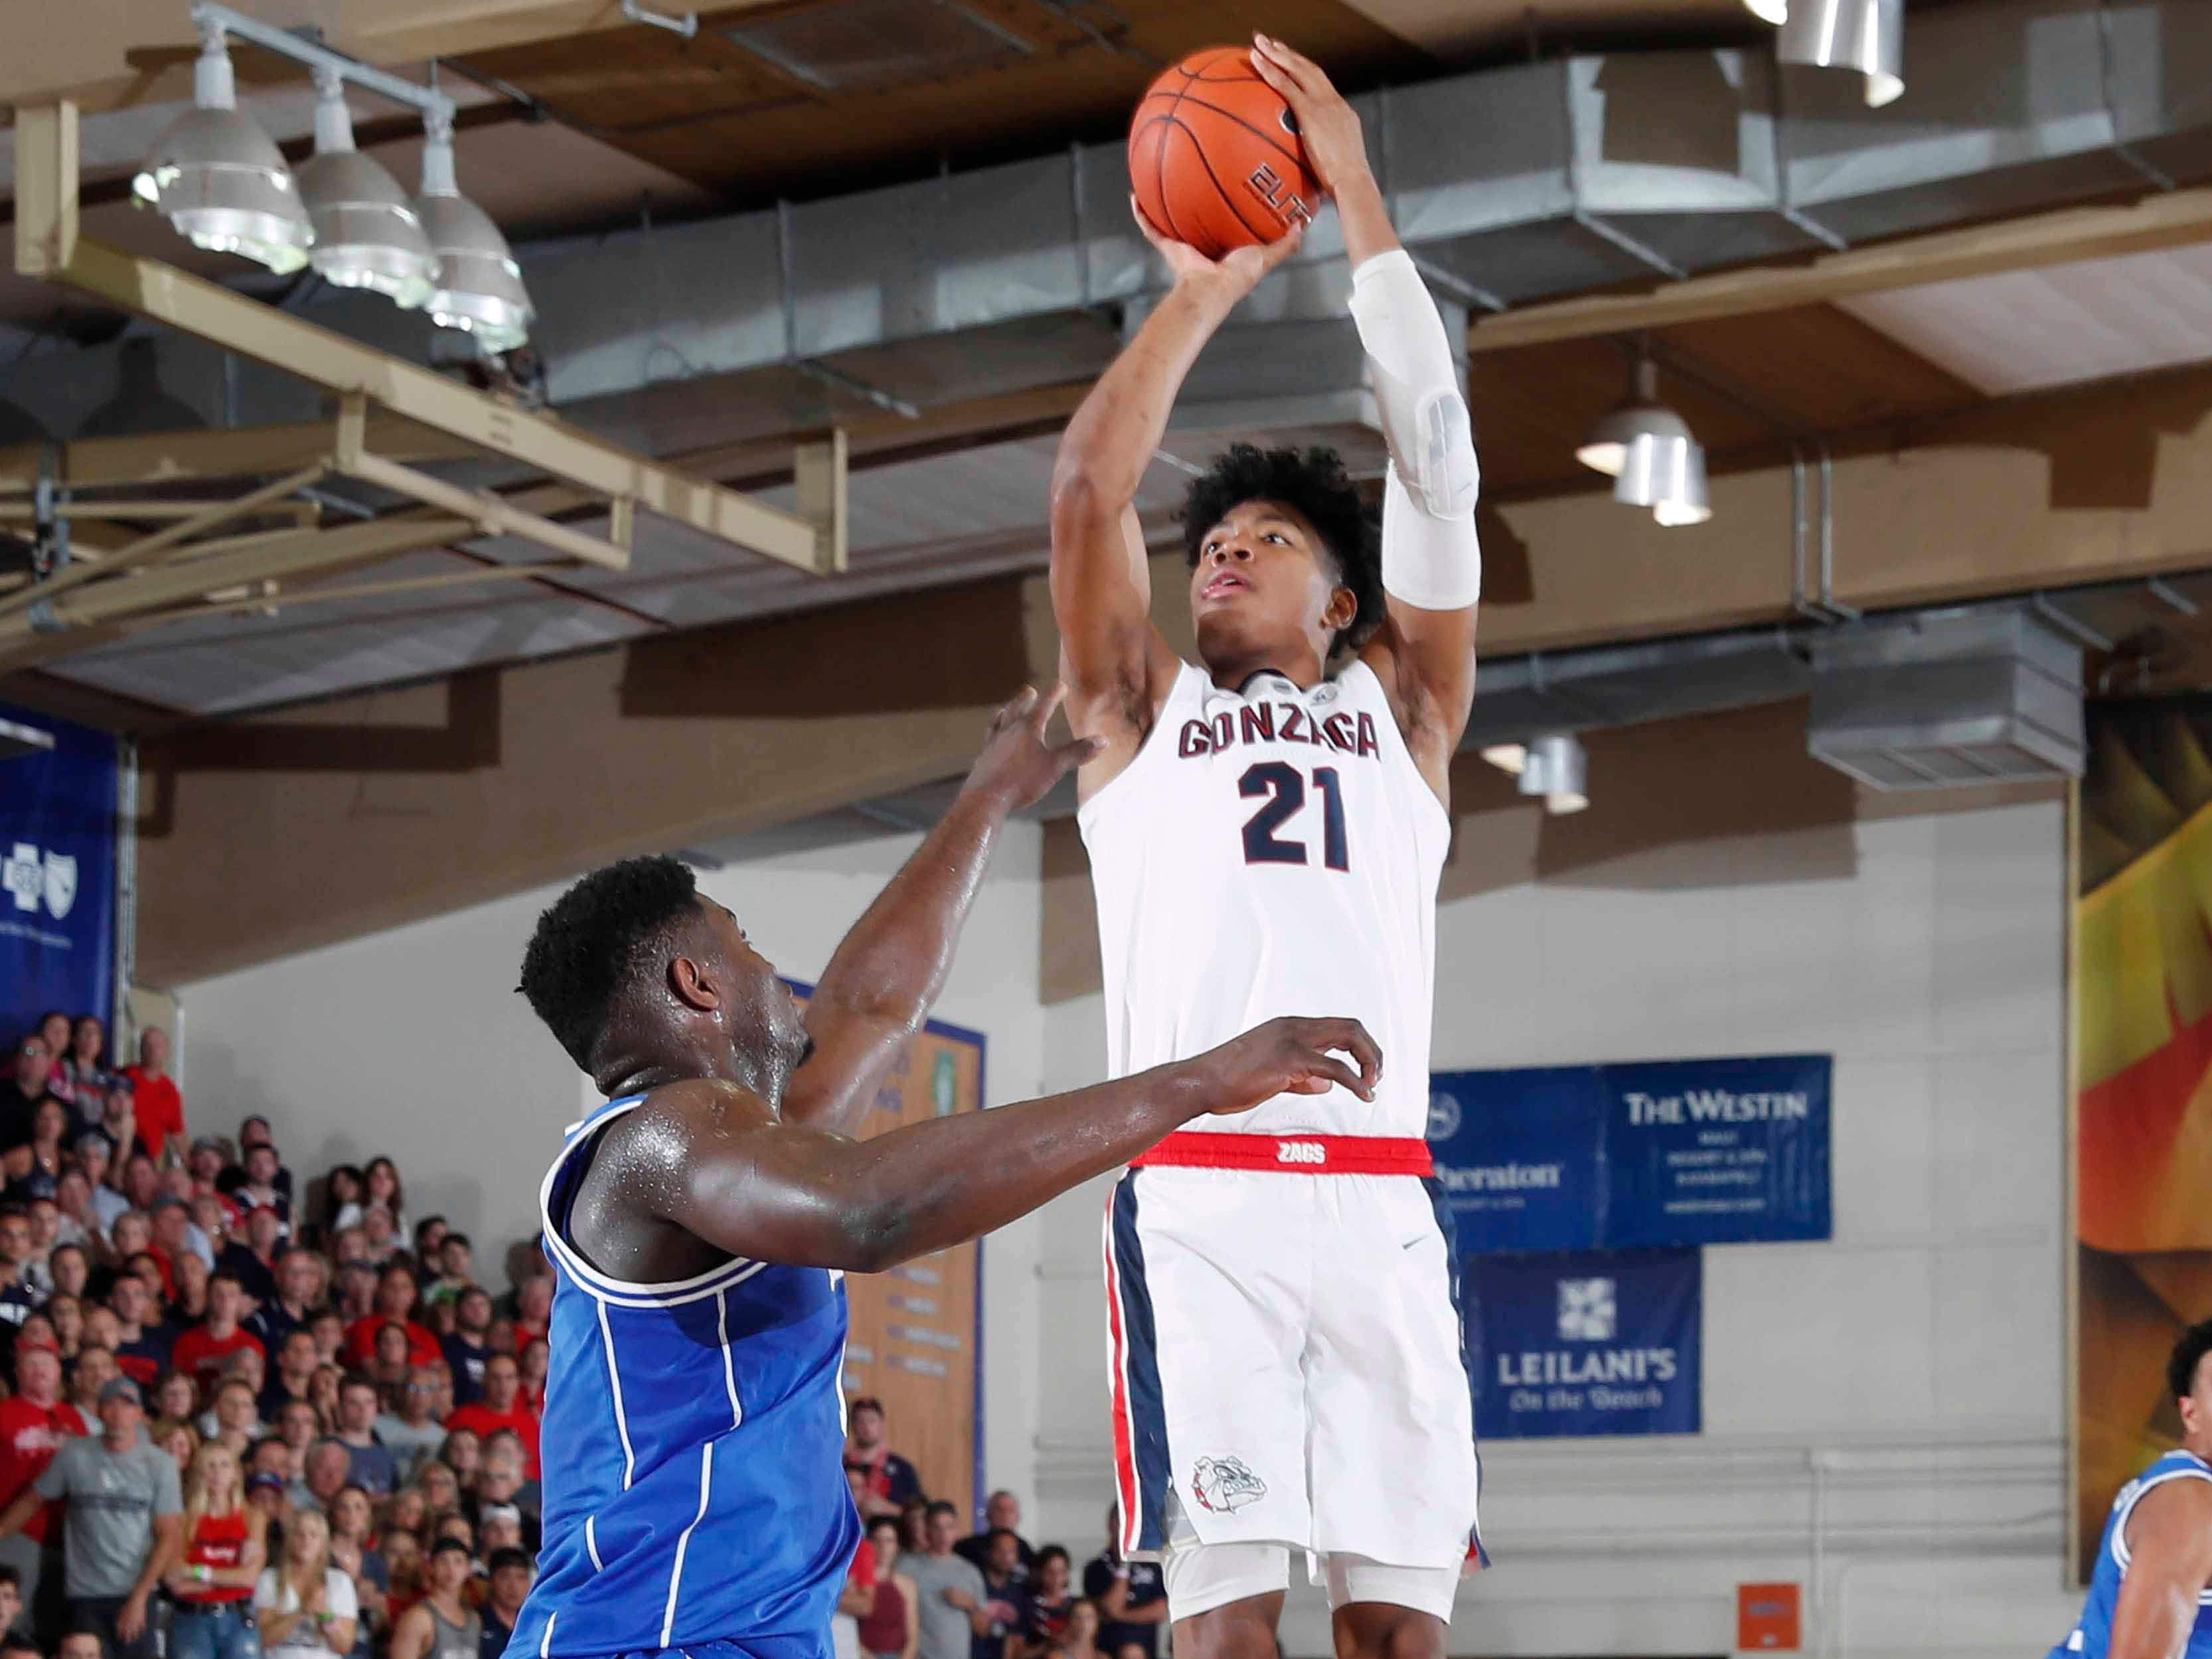 Gonzaga Bulldogs forward Rui Hachimura takes a shot against Duke Blue Devils forward Zion Williamson during the championship game of the Maui Jim Maui Invitational.